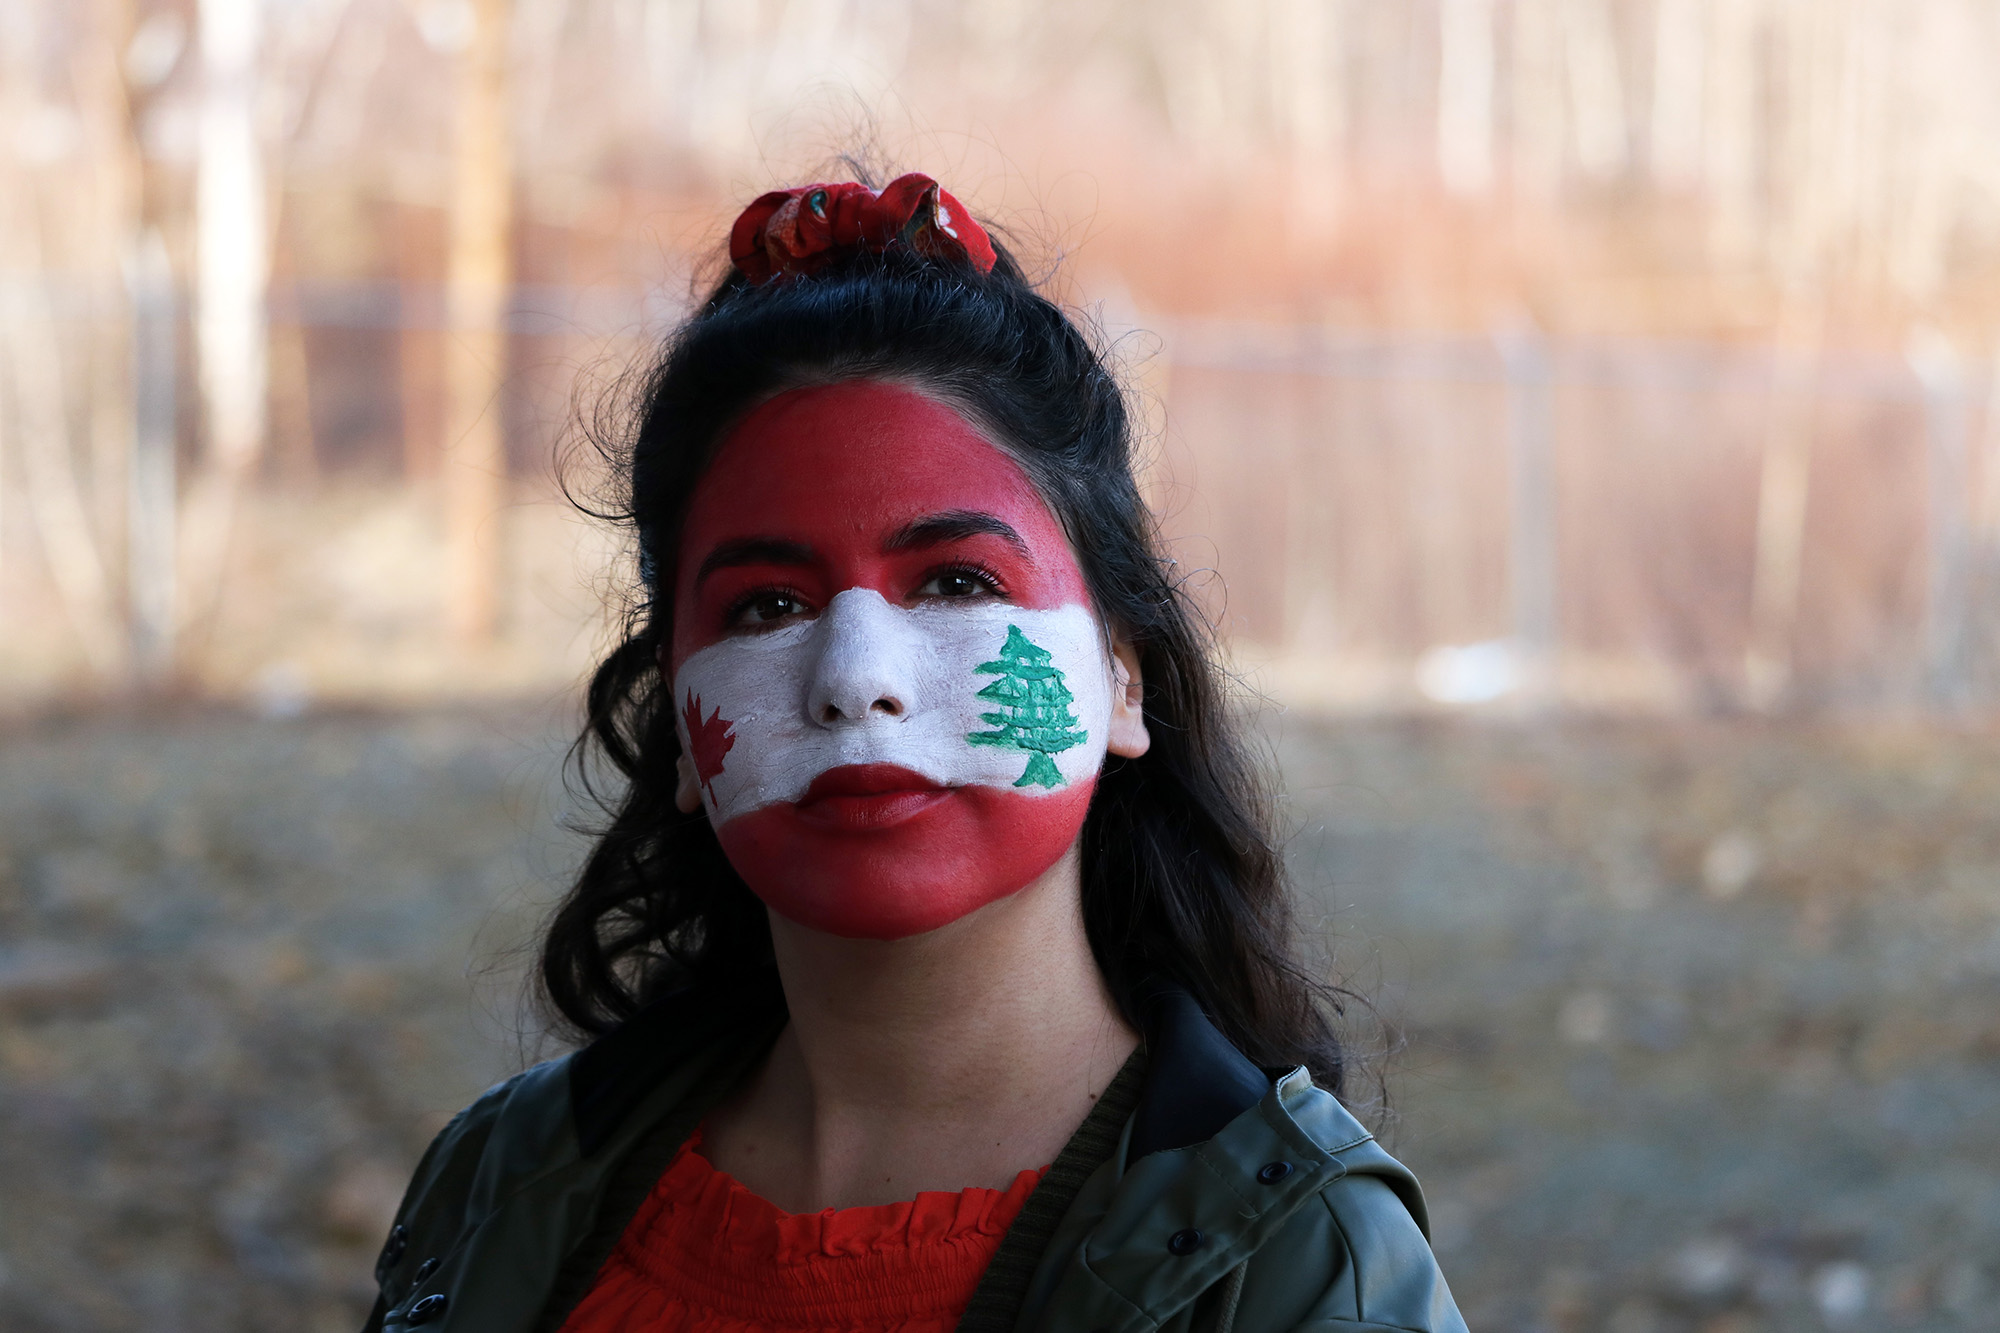 Fadila Chater embraces both cultures, Canadian and Lebanese.